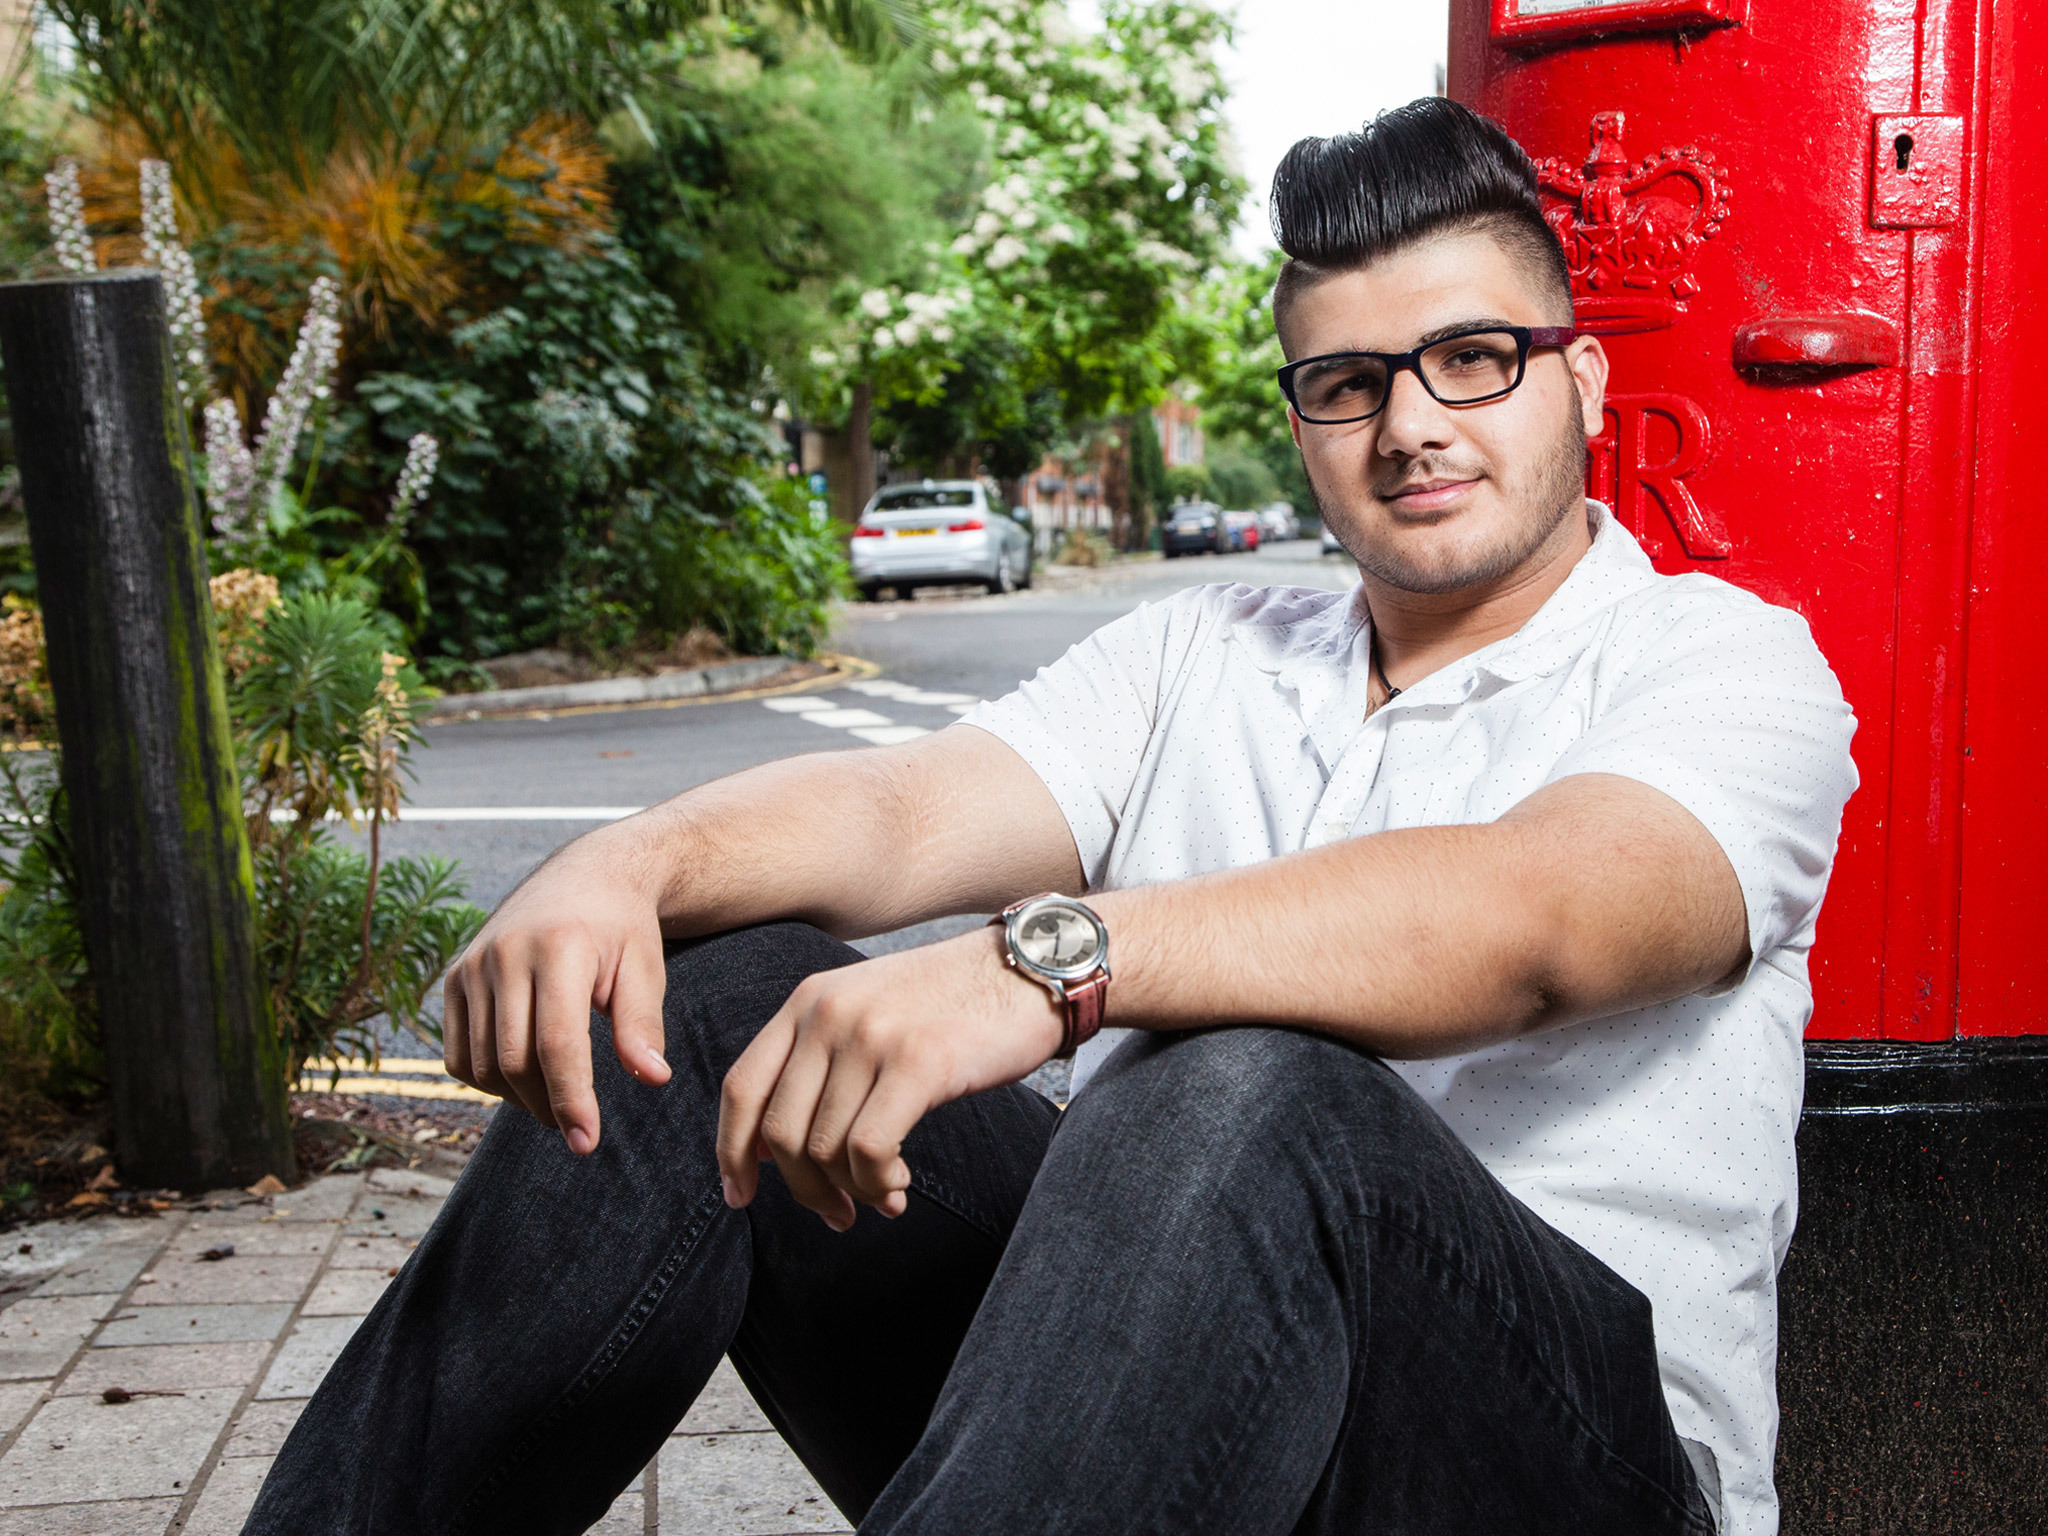 Meet an 18-year-old Syrian refugee who's building a new life in London